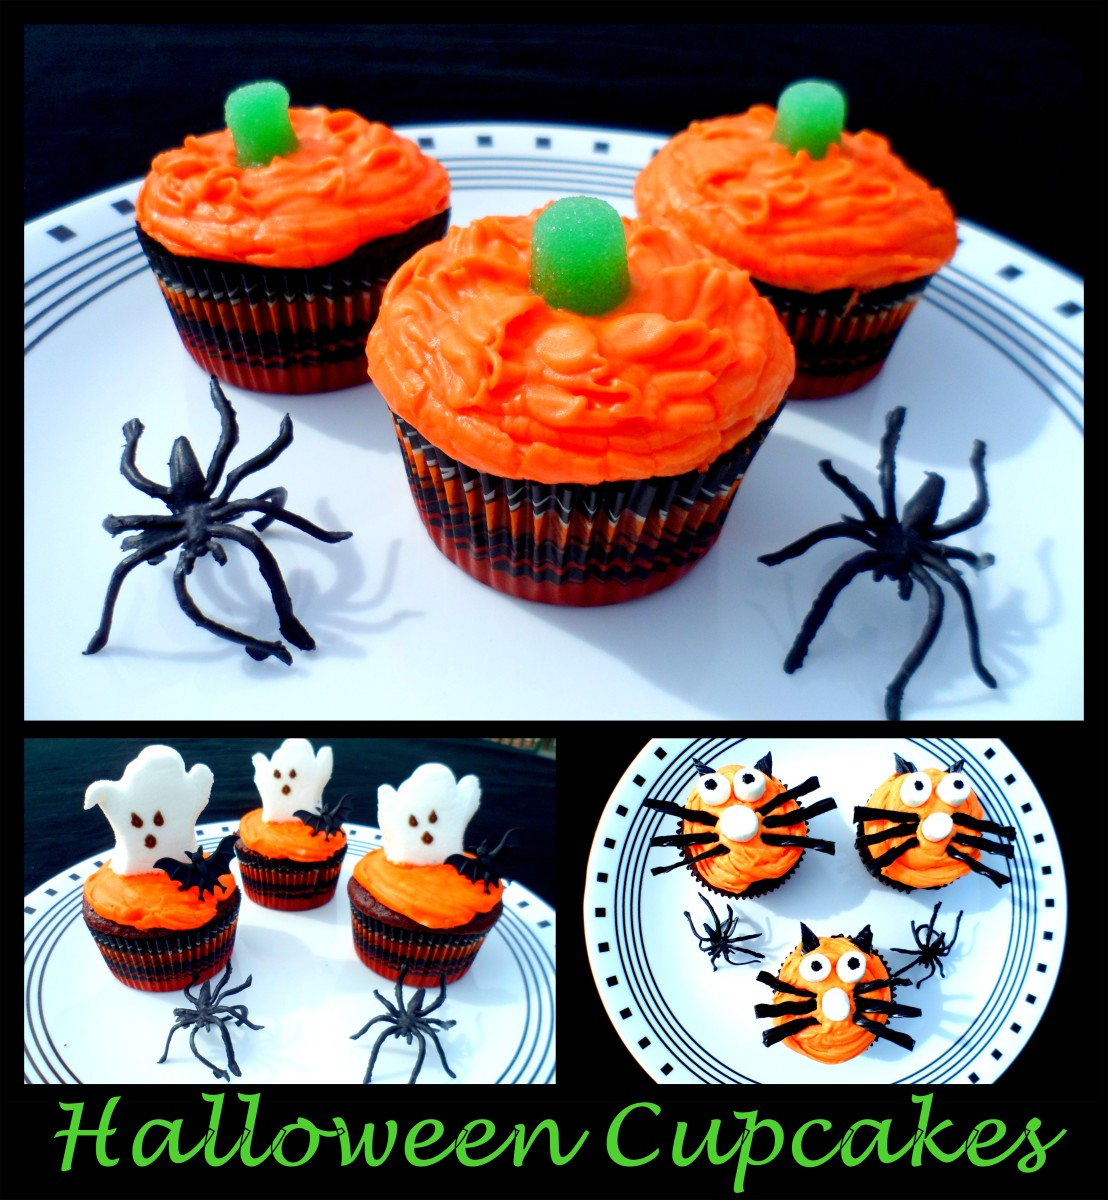 Halloween cupcakes cupcake decorating ideas hubpages - Halloween decorations for cupcakes ...